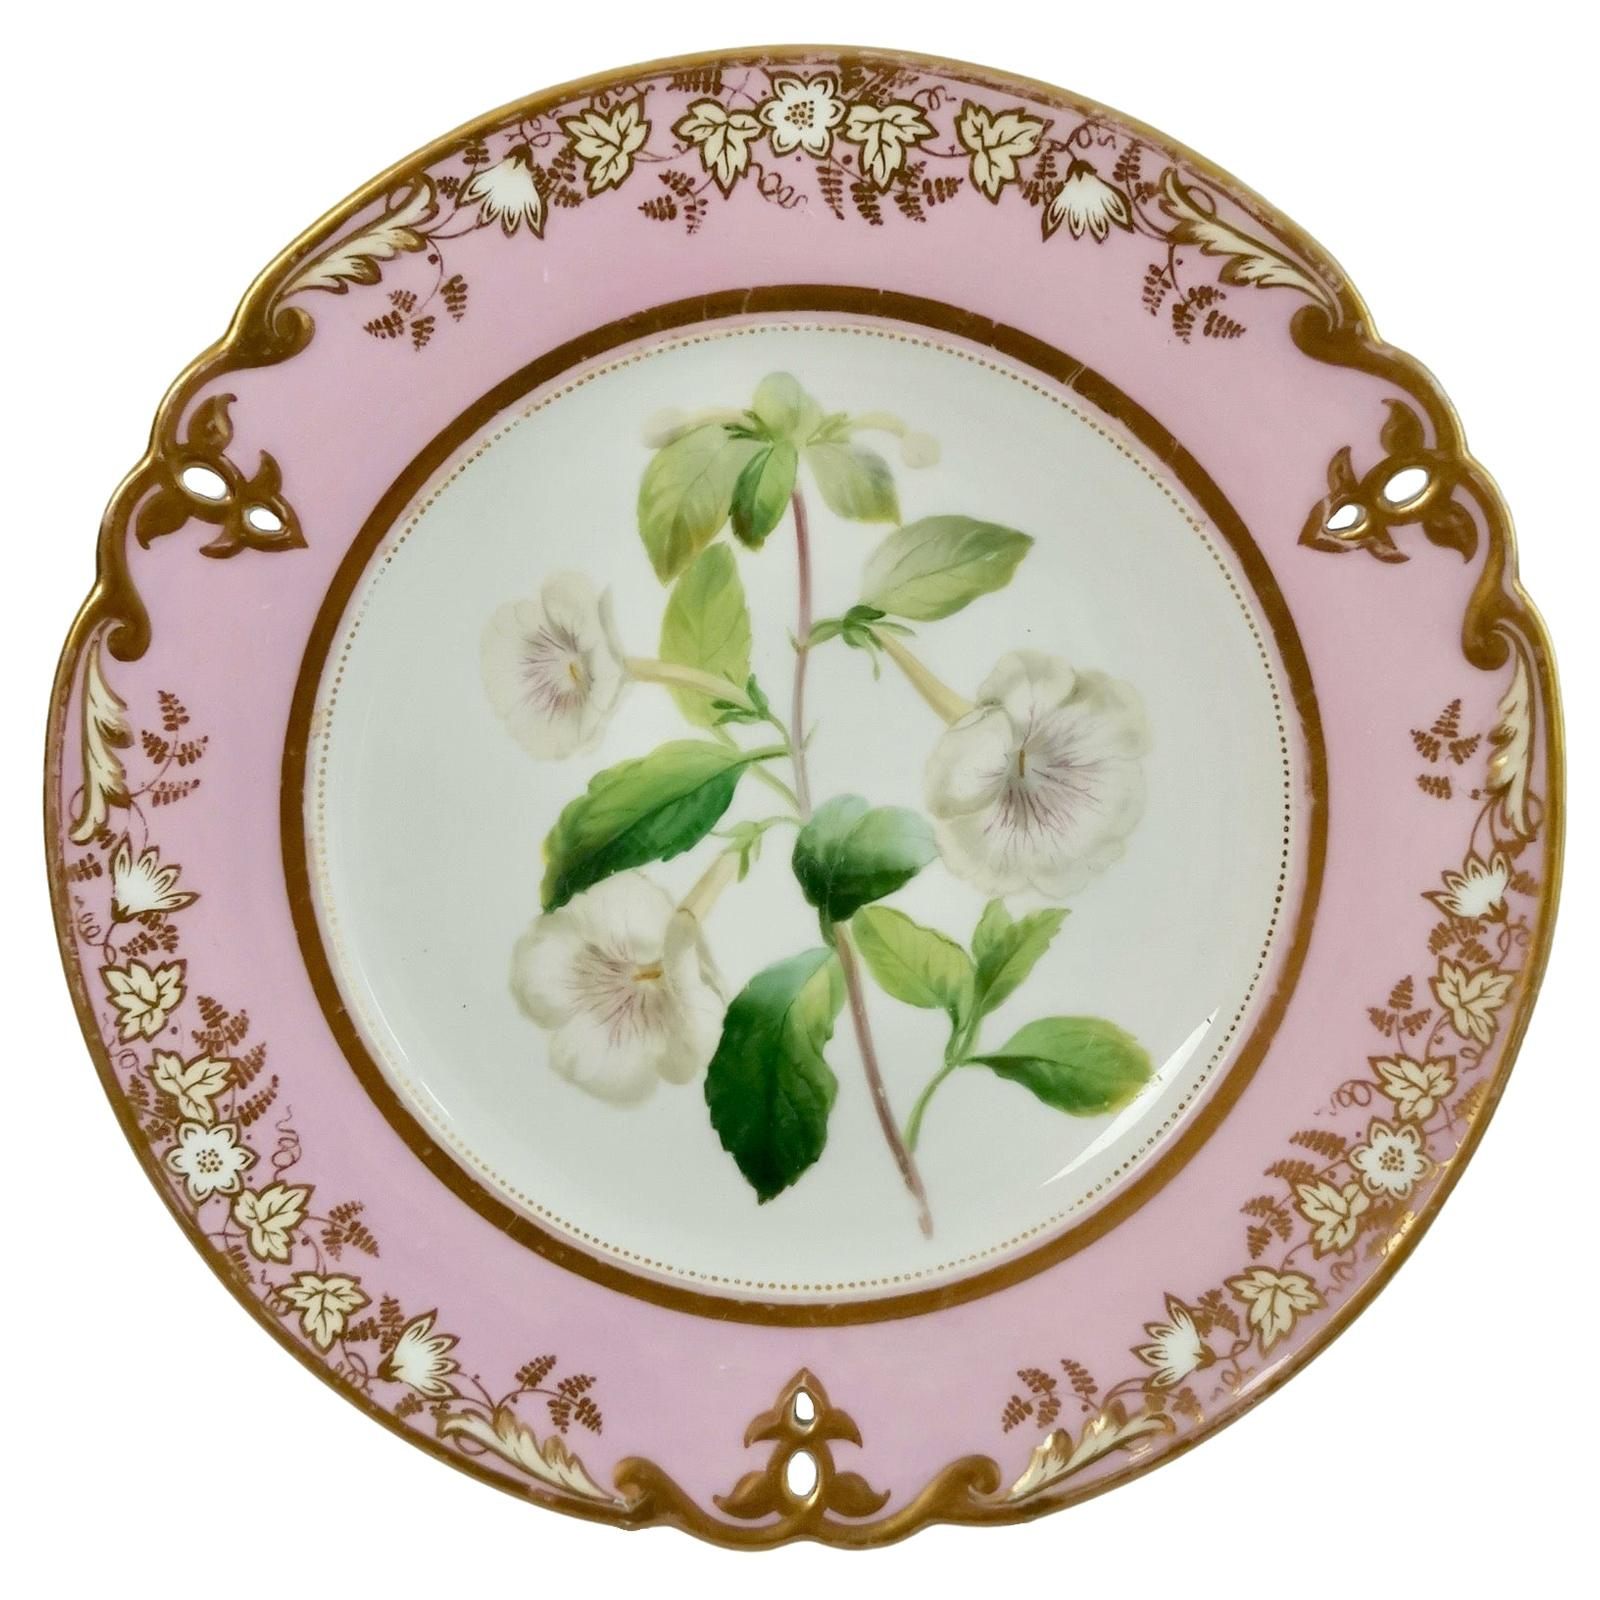 Samuel Alcock Porcelain Plate, Pink with White Achimenes, circa 1852 '1'